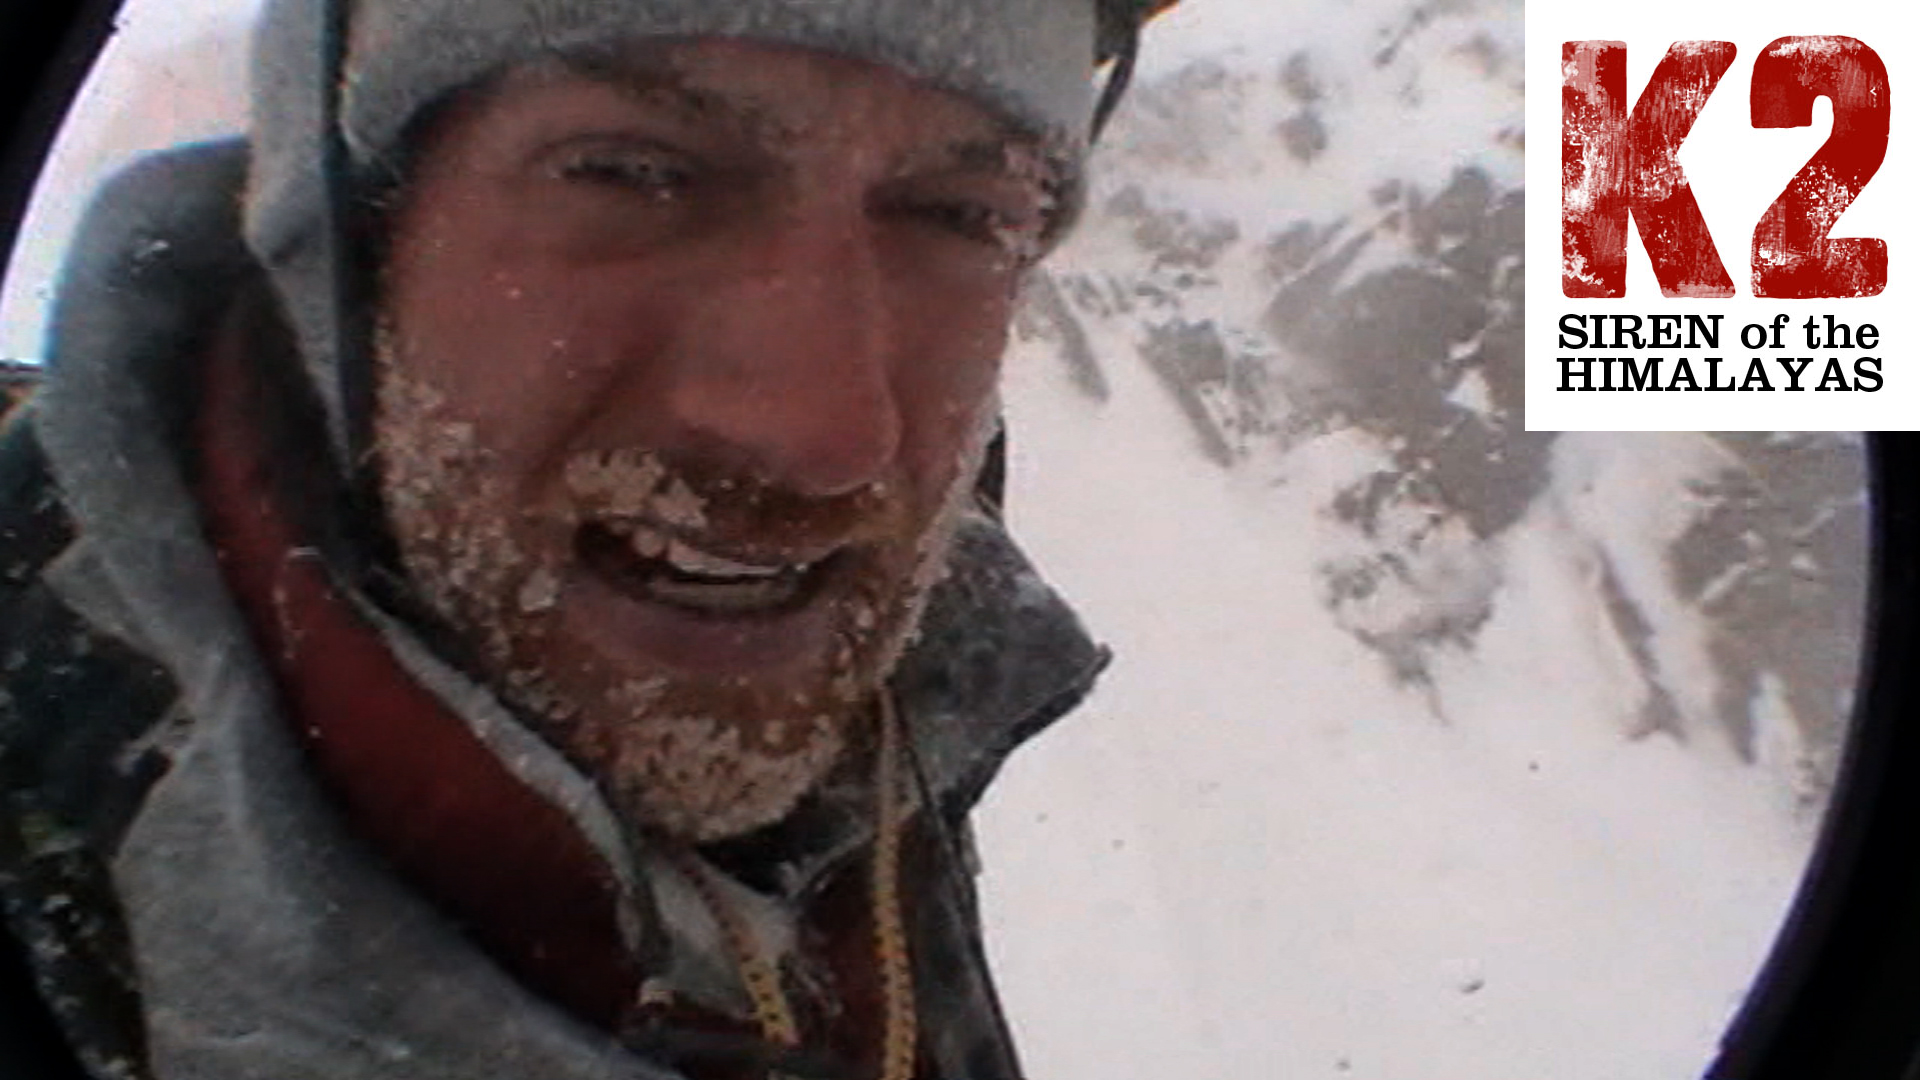 Jake Meyer encounters harsh weather conditions on K2